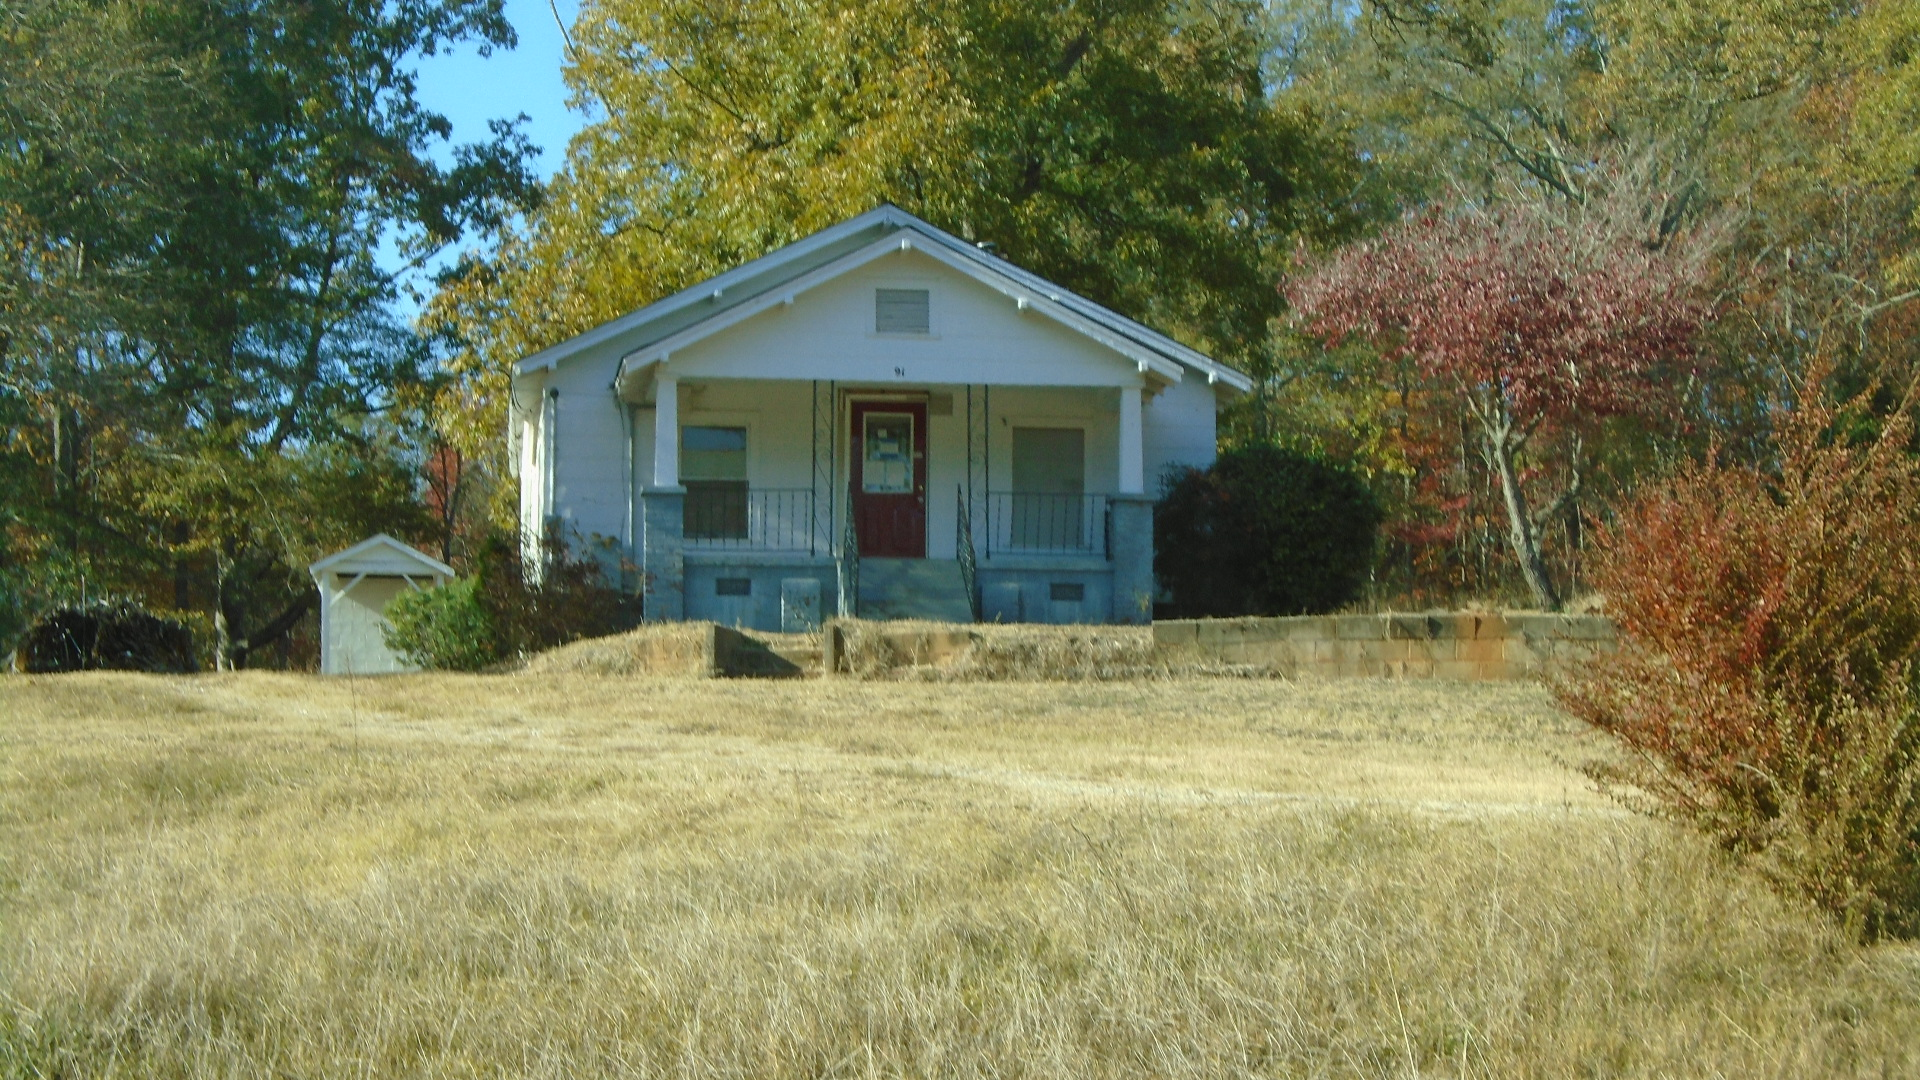 91 Smith St Ext Ware Shoals SC 29692 front of home